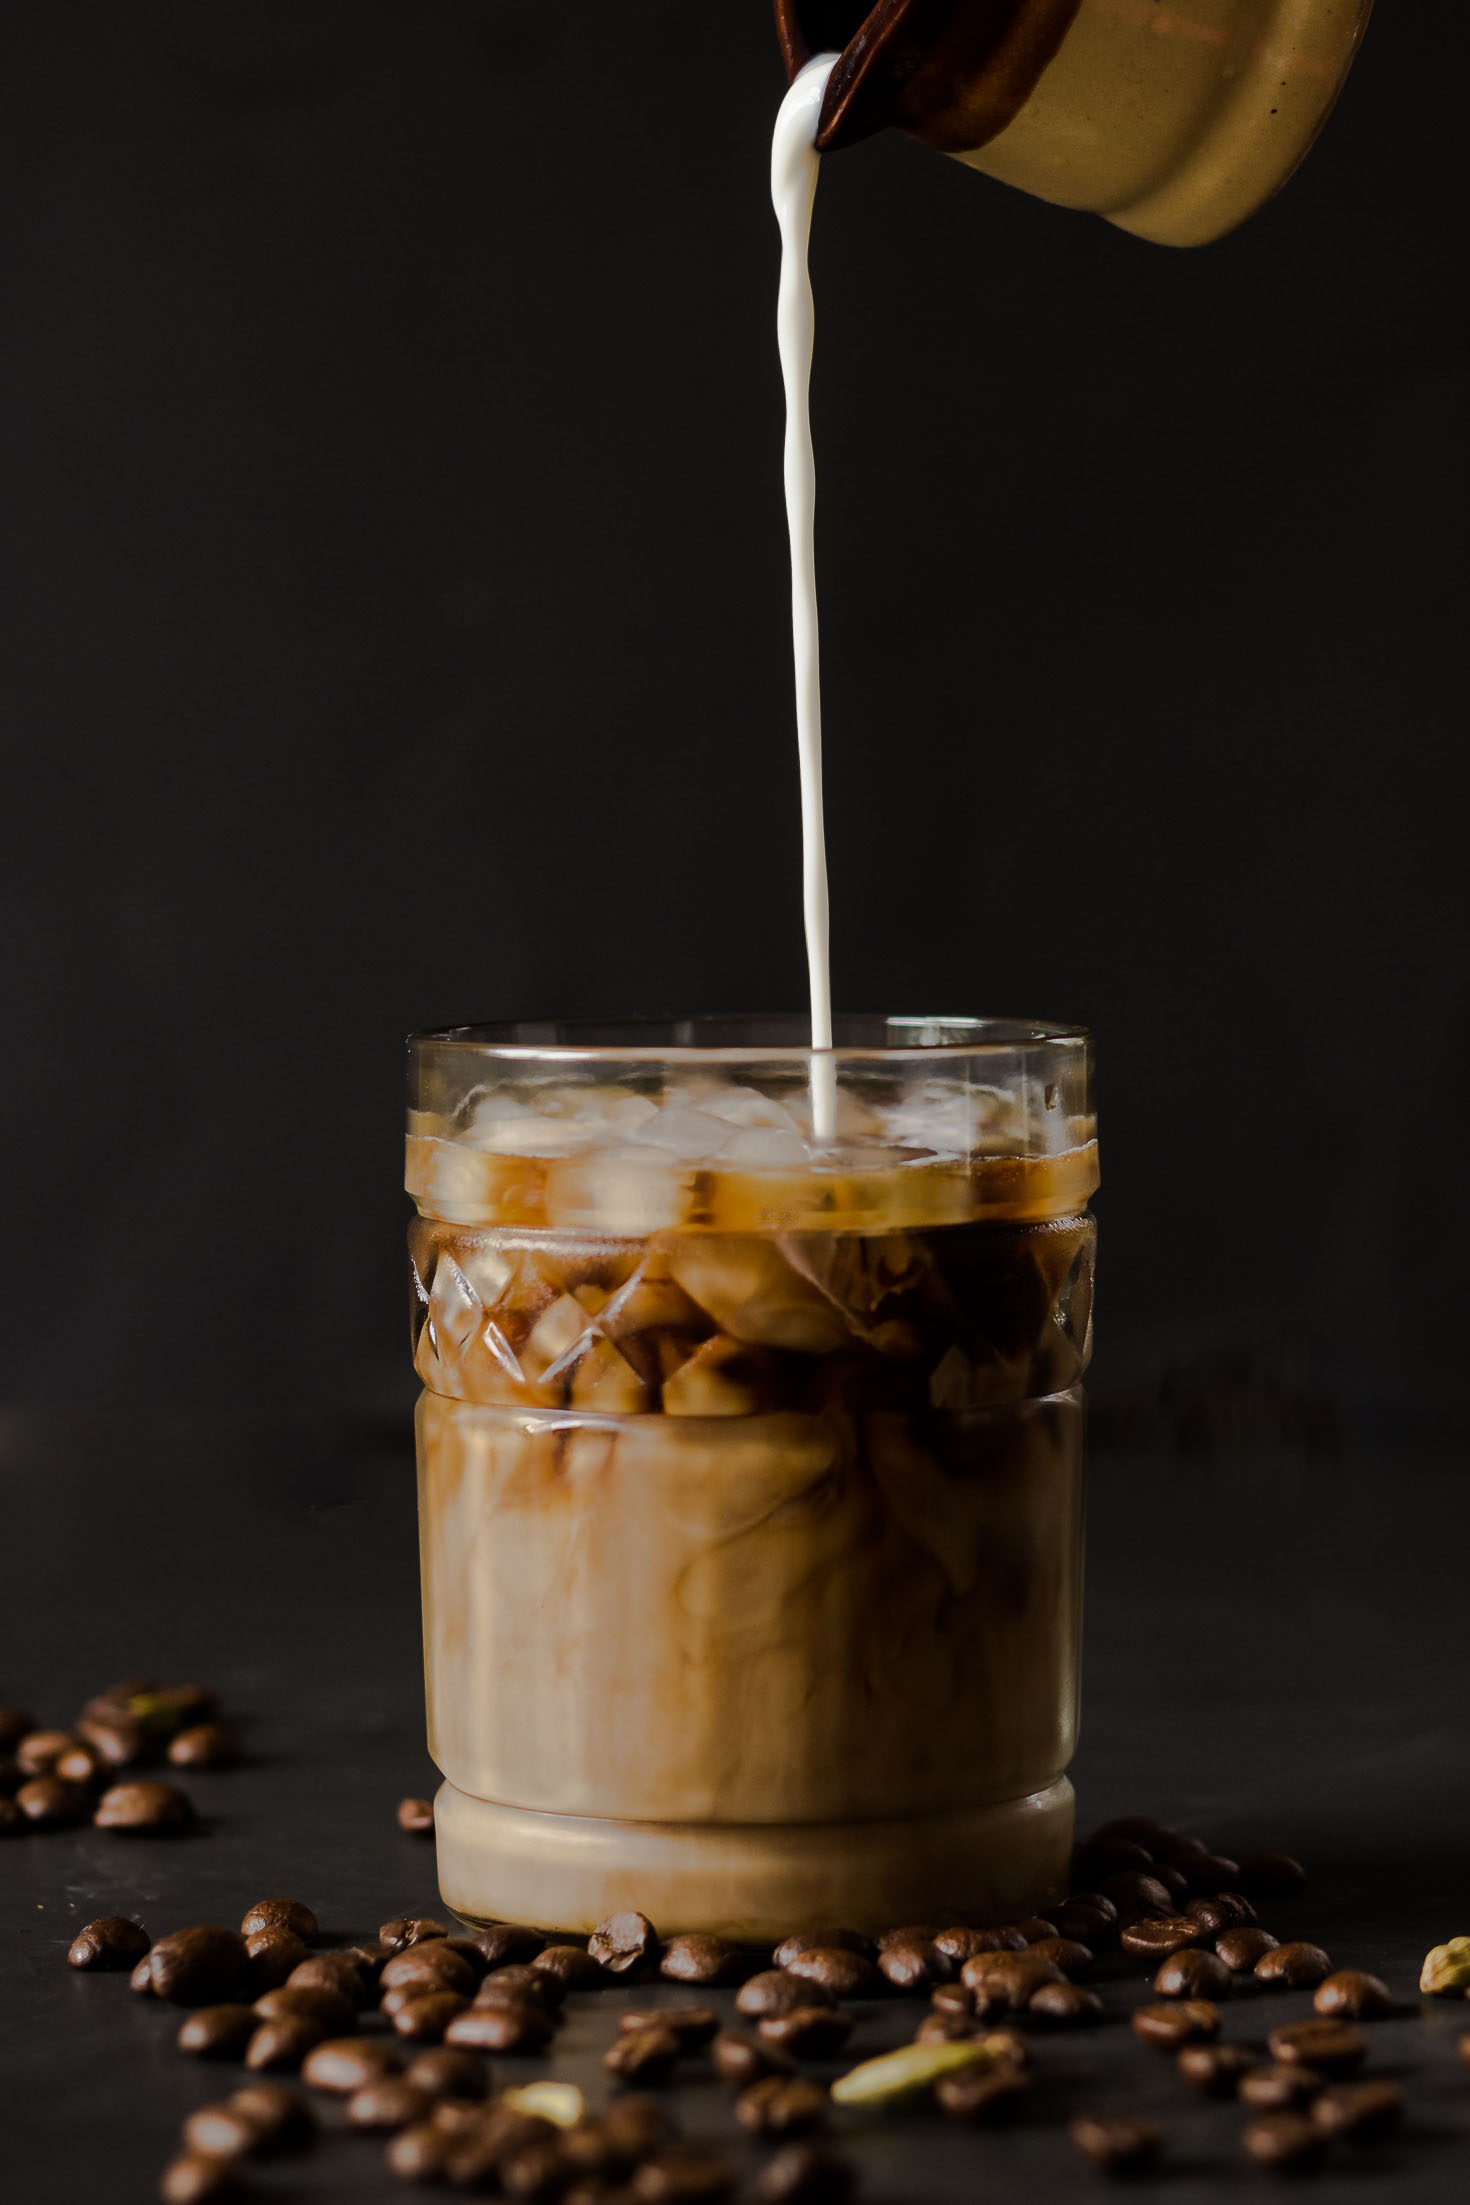 Cardamom Cold-Brewed Coffee-Front view-creamer is pouring into a glass of iced coffee with coffee beans and cardamom pods as foreground.